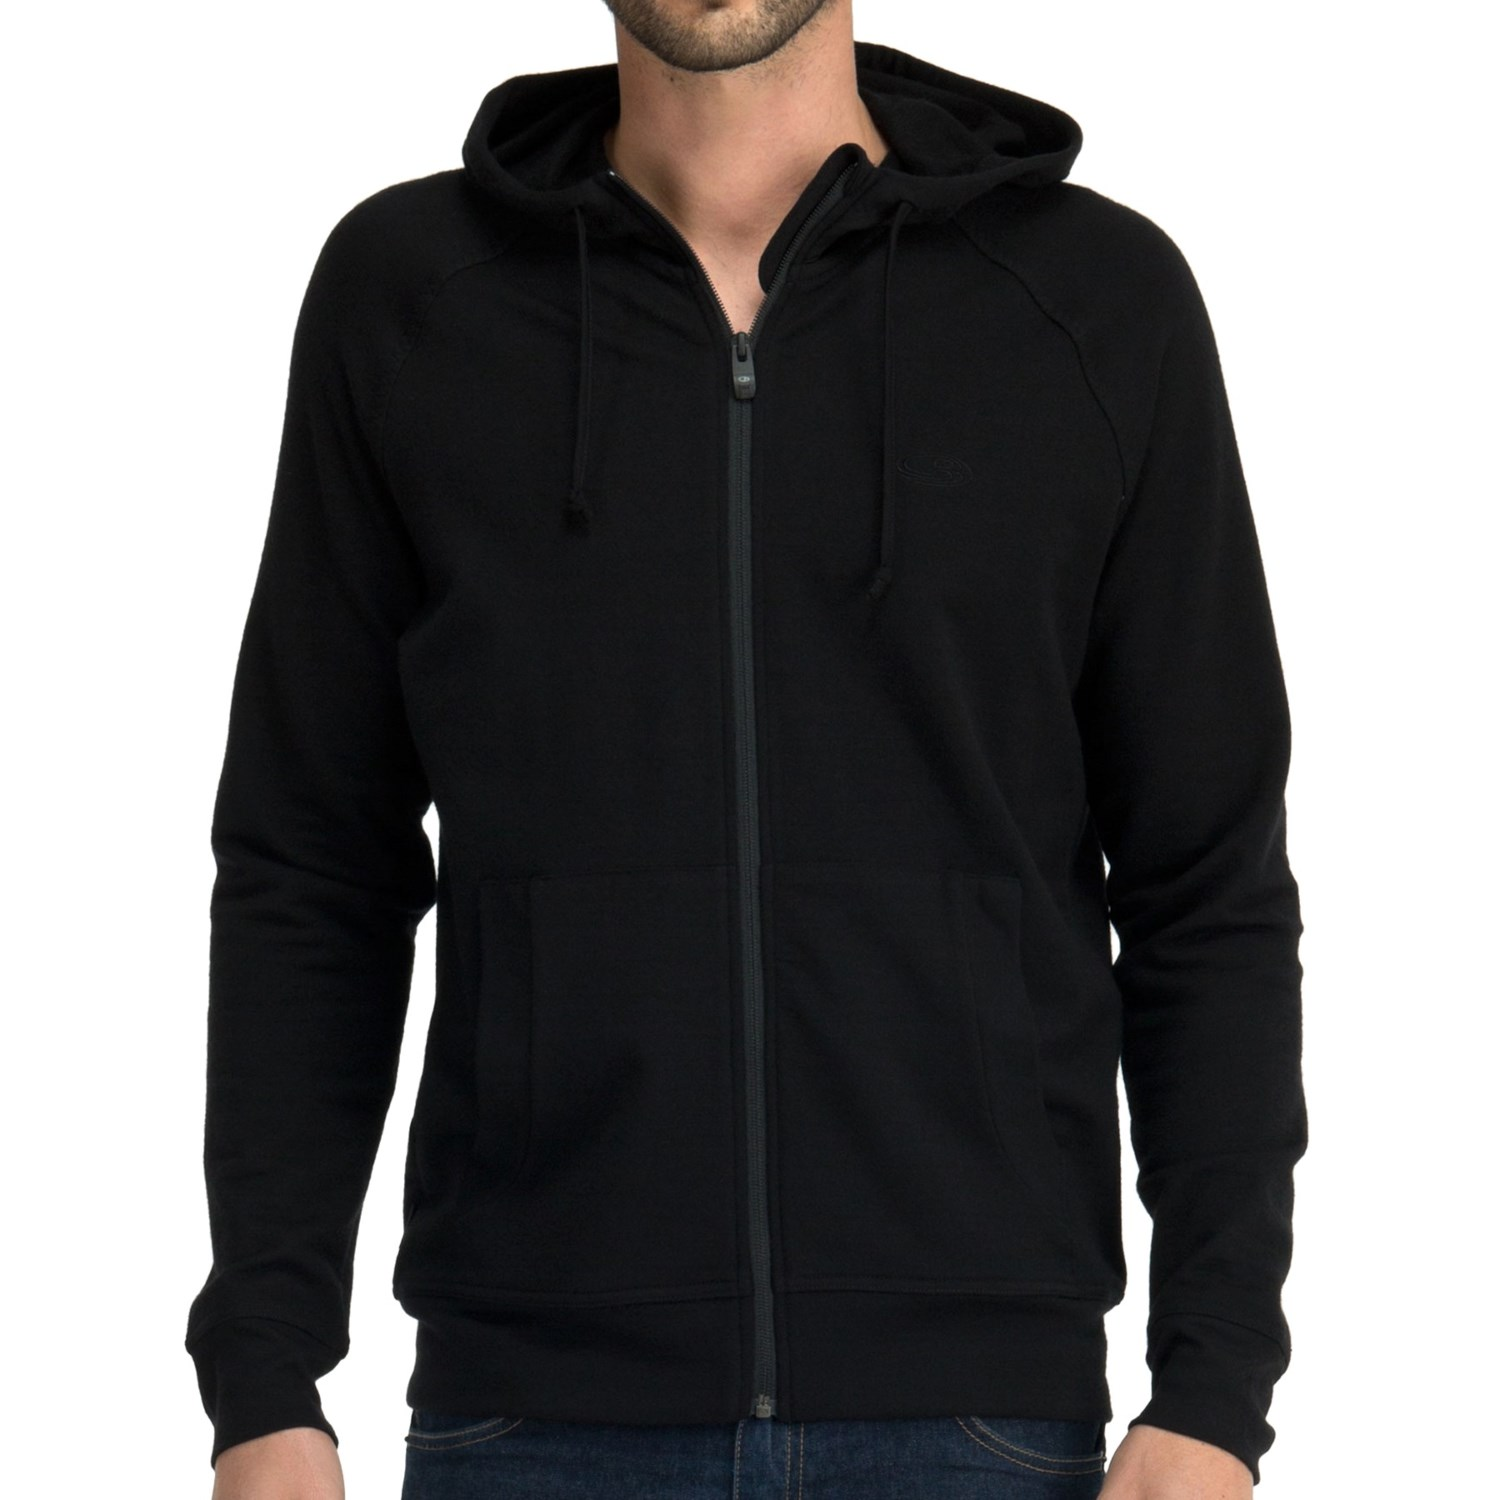 Shop men's hoodies and sweatshirts at Vince for upgraded off-duty style. Enjoy free shipping on all orders and returns.